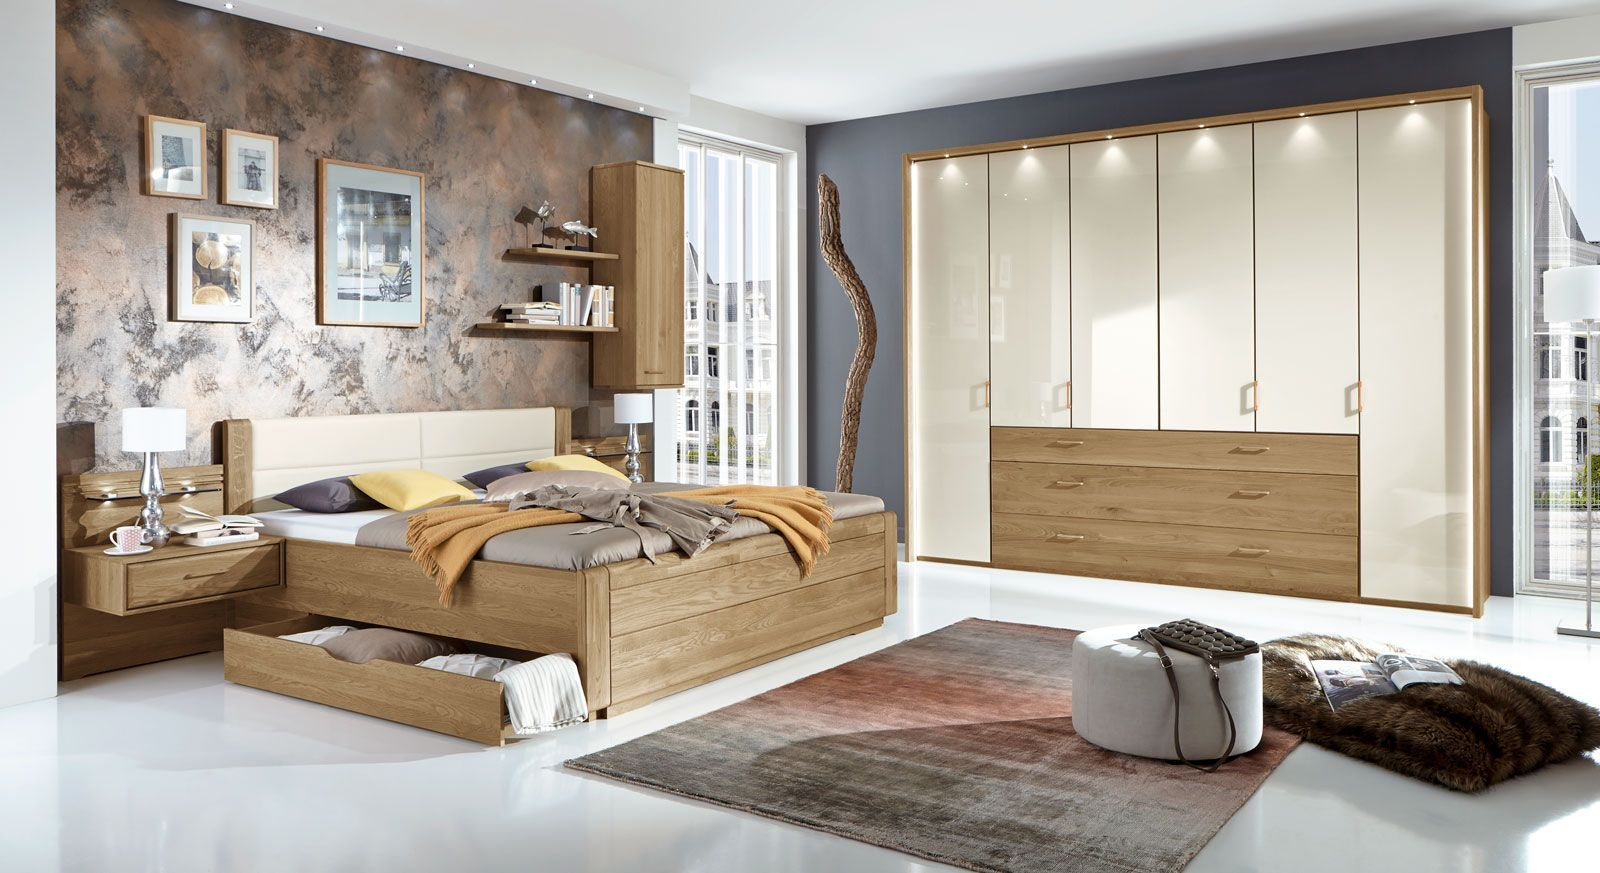 Schrankbett Ludwig Moderne Schlafzimmer Holz Car And Home In 2019 Bedroom Room